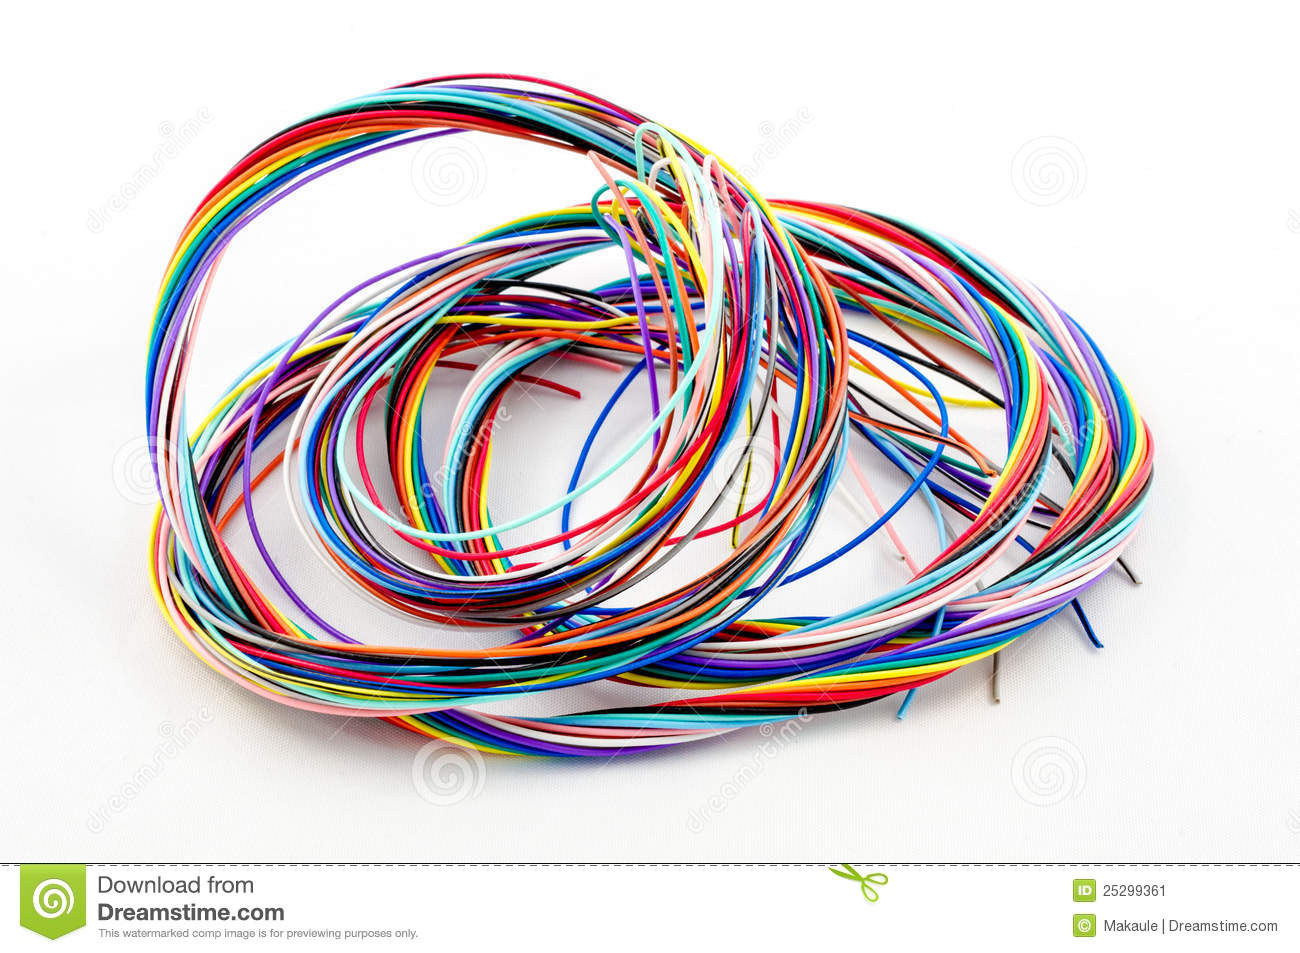 A bunch of colourful cables